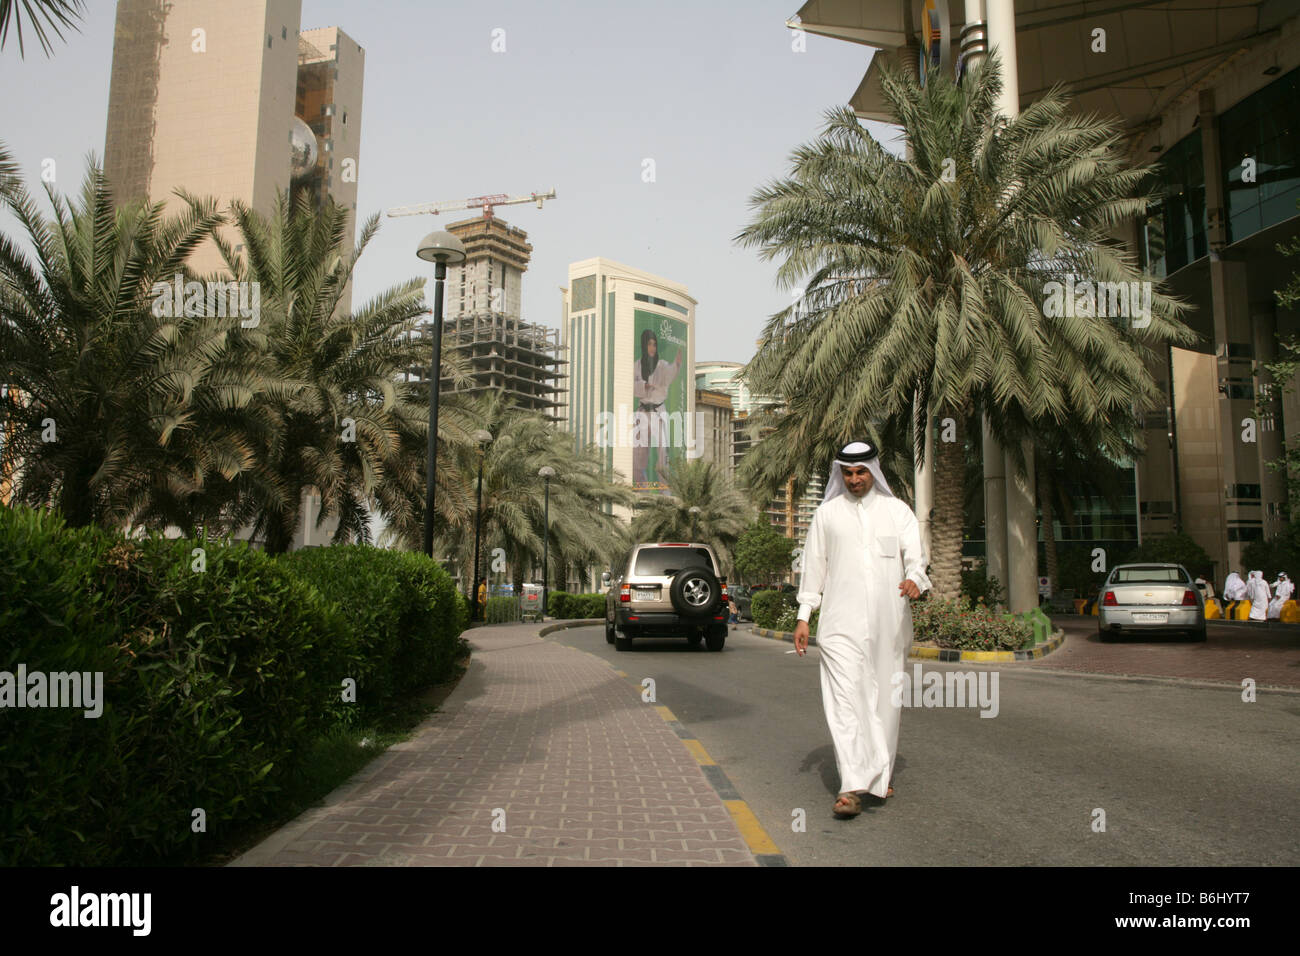 Street scene with Qatari man in traditional clothing on the street of Doha, Qatar. Stock Photo